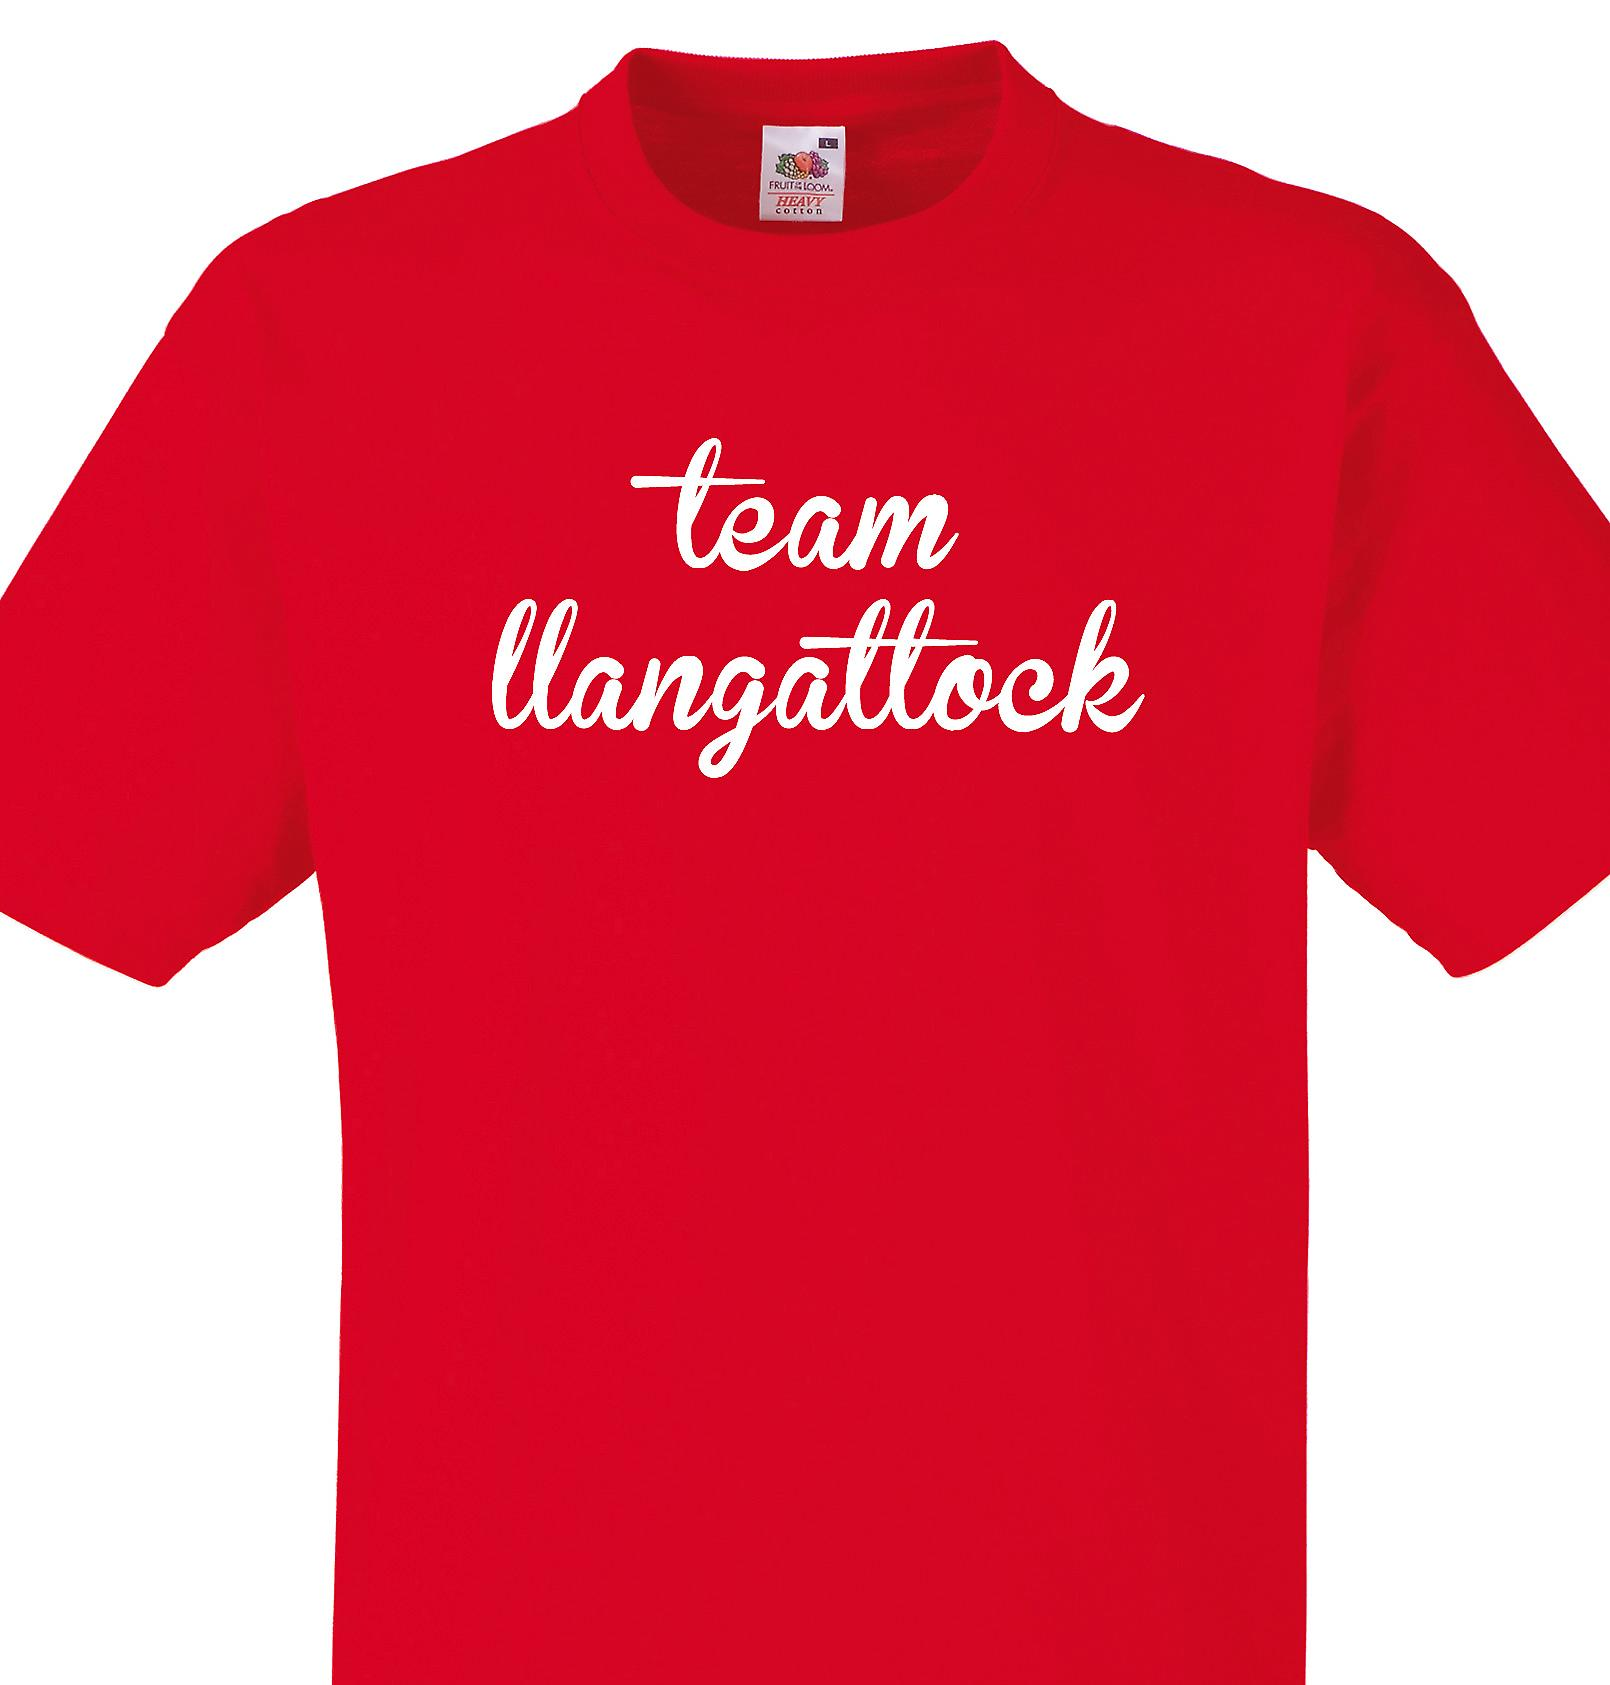 Team Llangattock Red T shirt